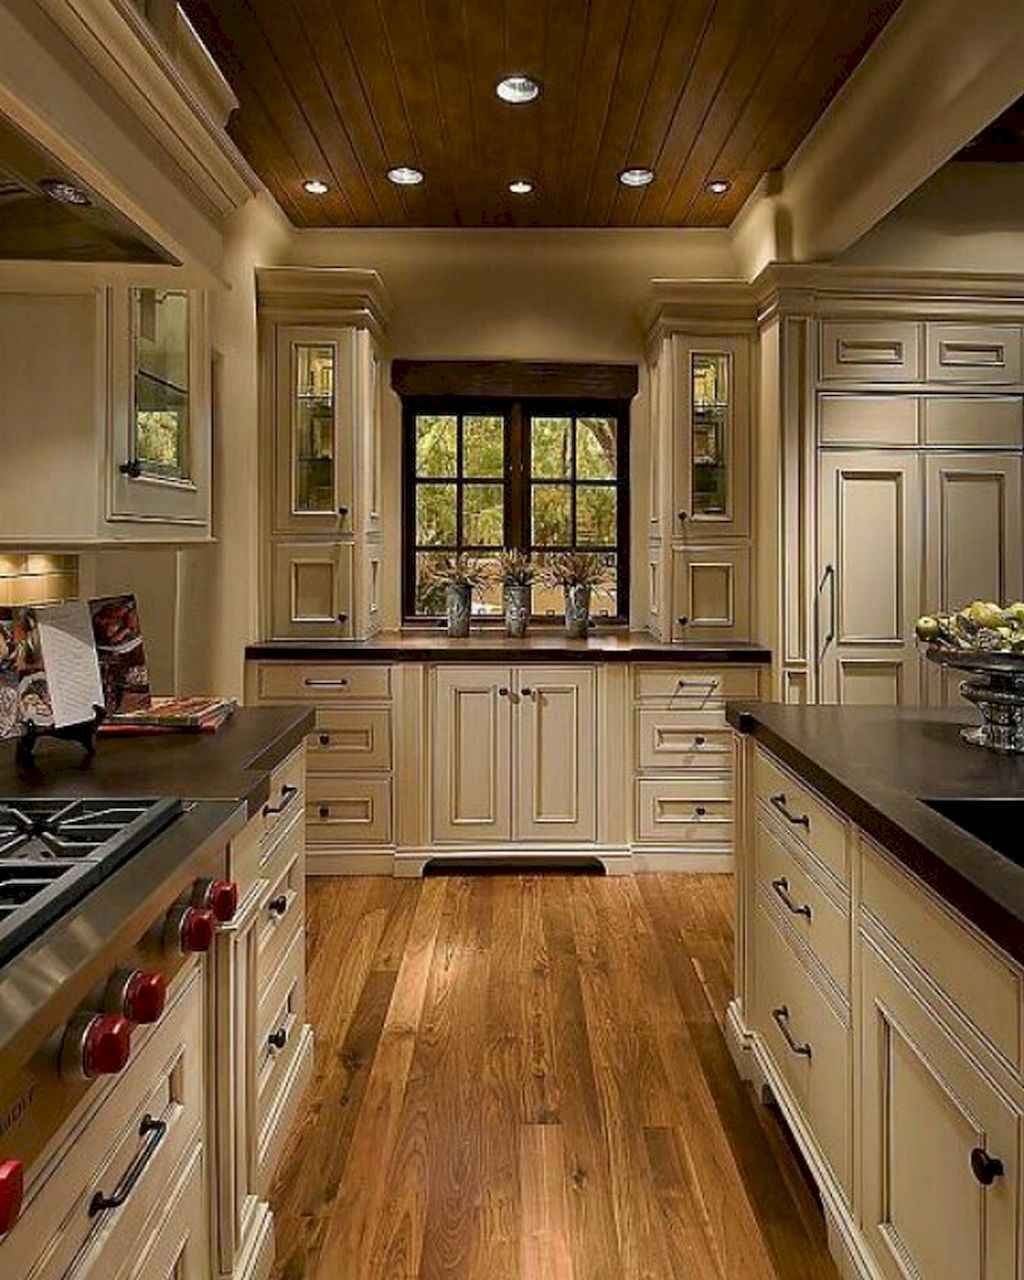 Incredible french country kitchen design ideas (35)